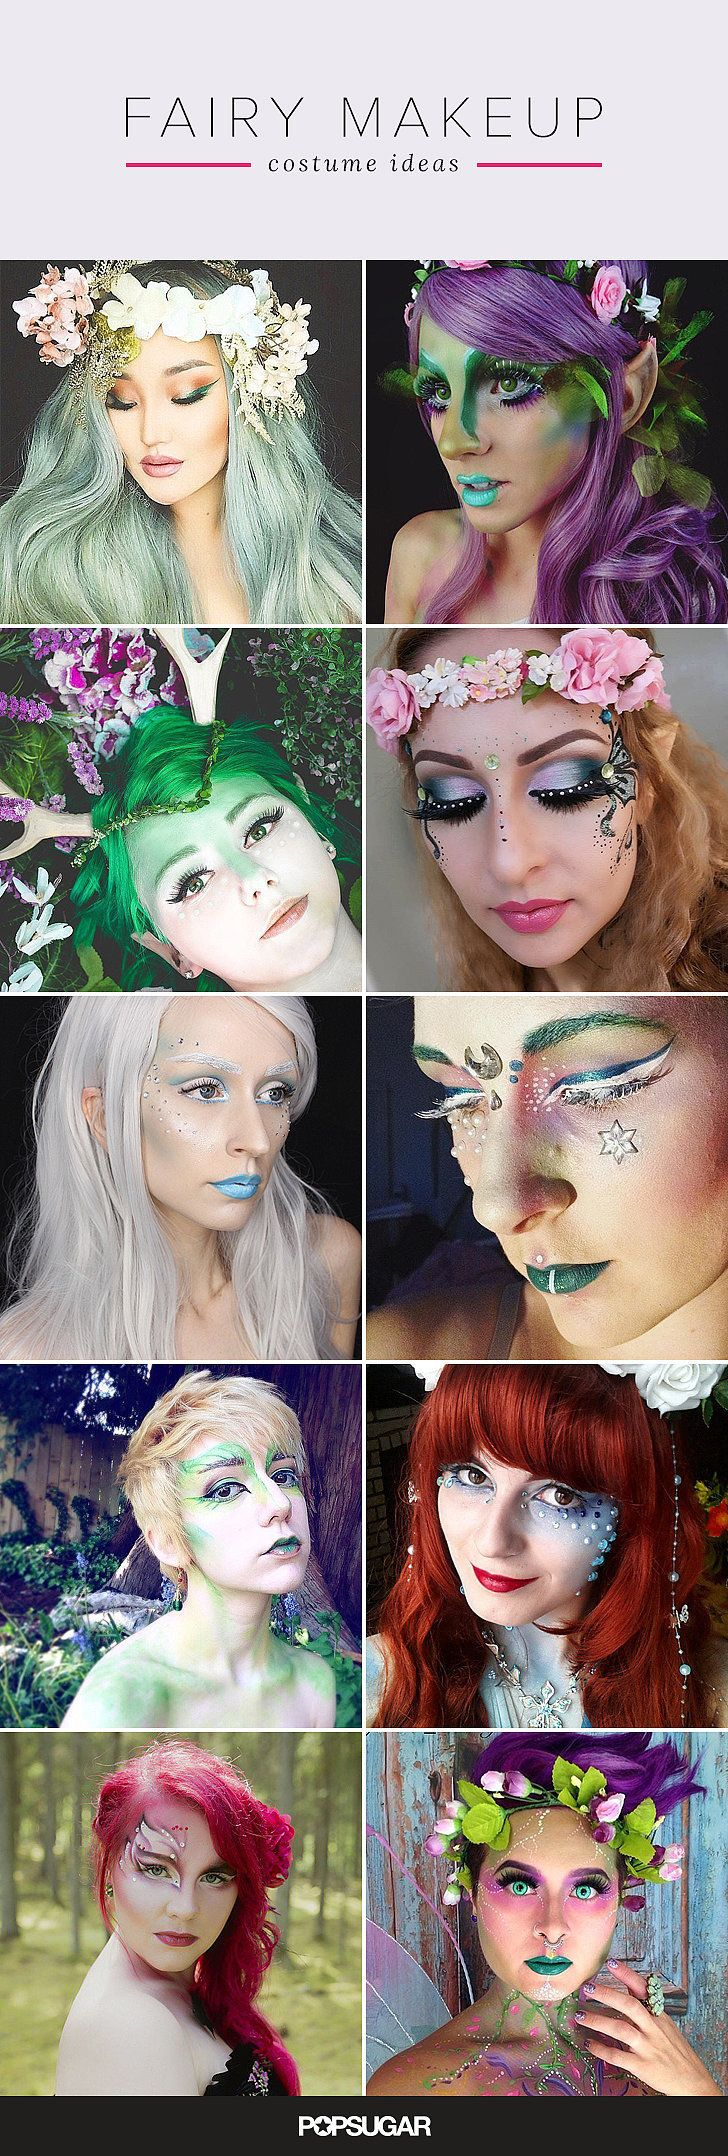 Fairy makeup                                                                                                                                                     More